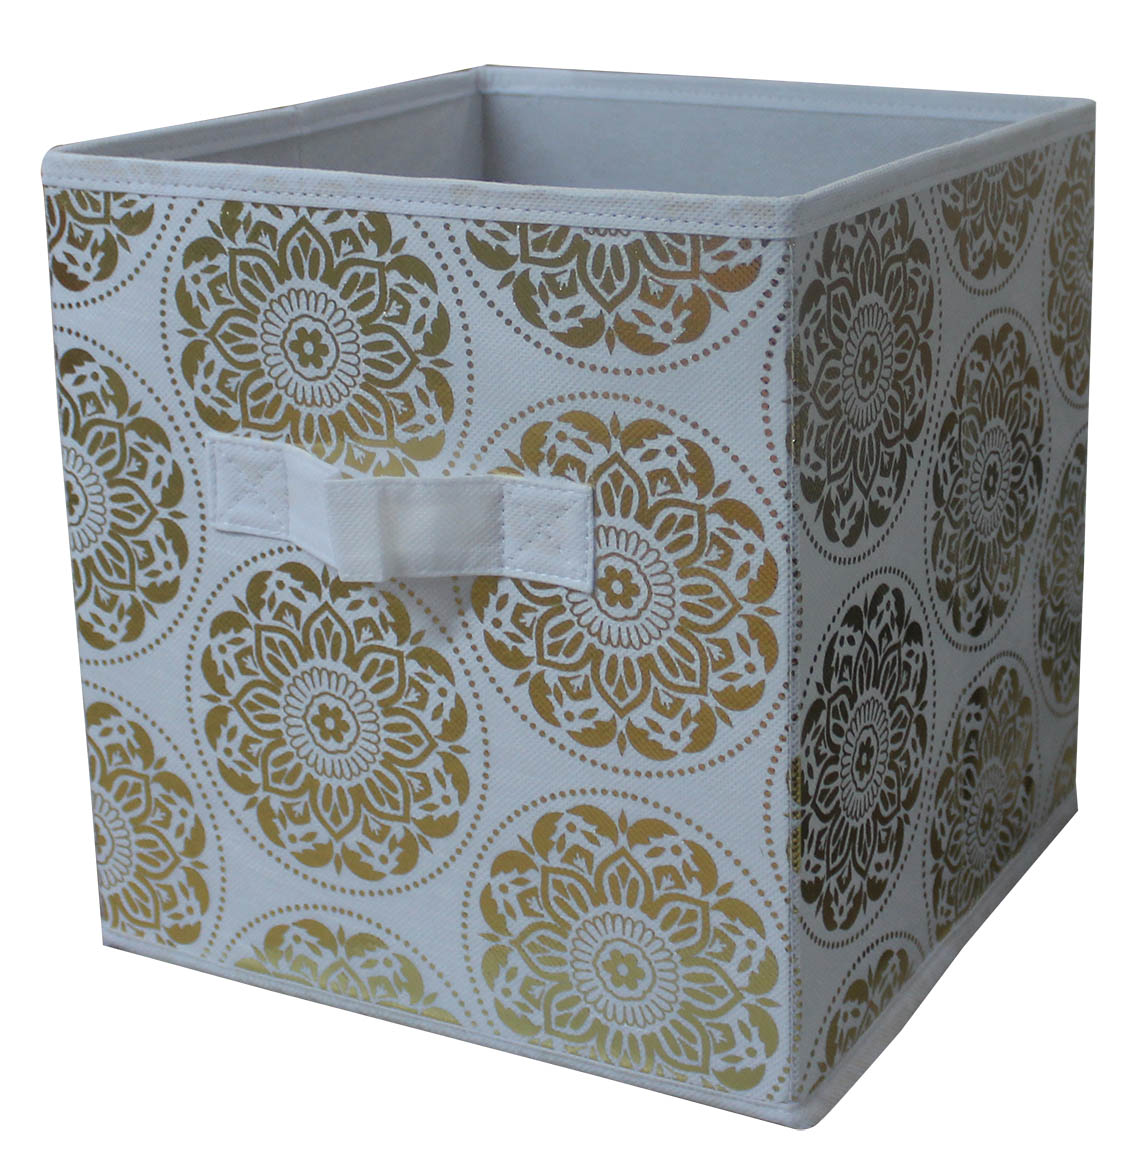 """Mainstays collapsible 10.5"""" x 10.5"""" cube storage bins, Gold Medallion"""